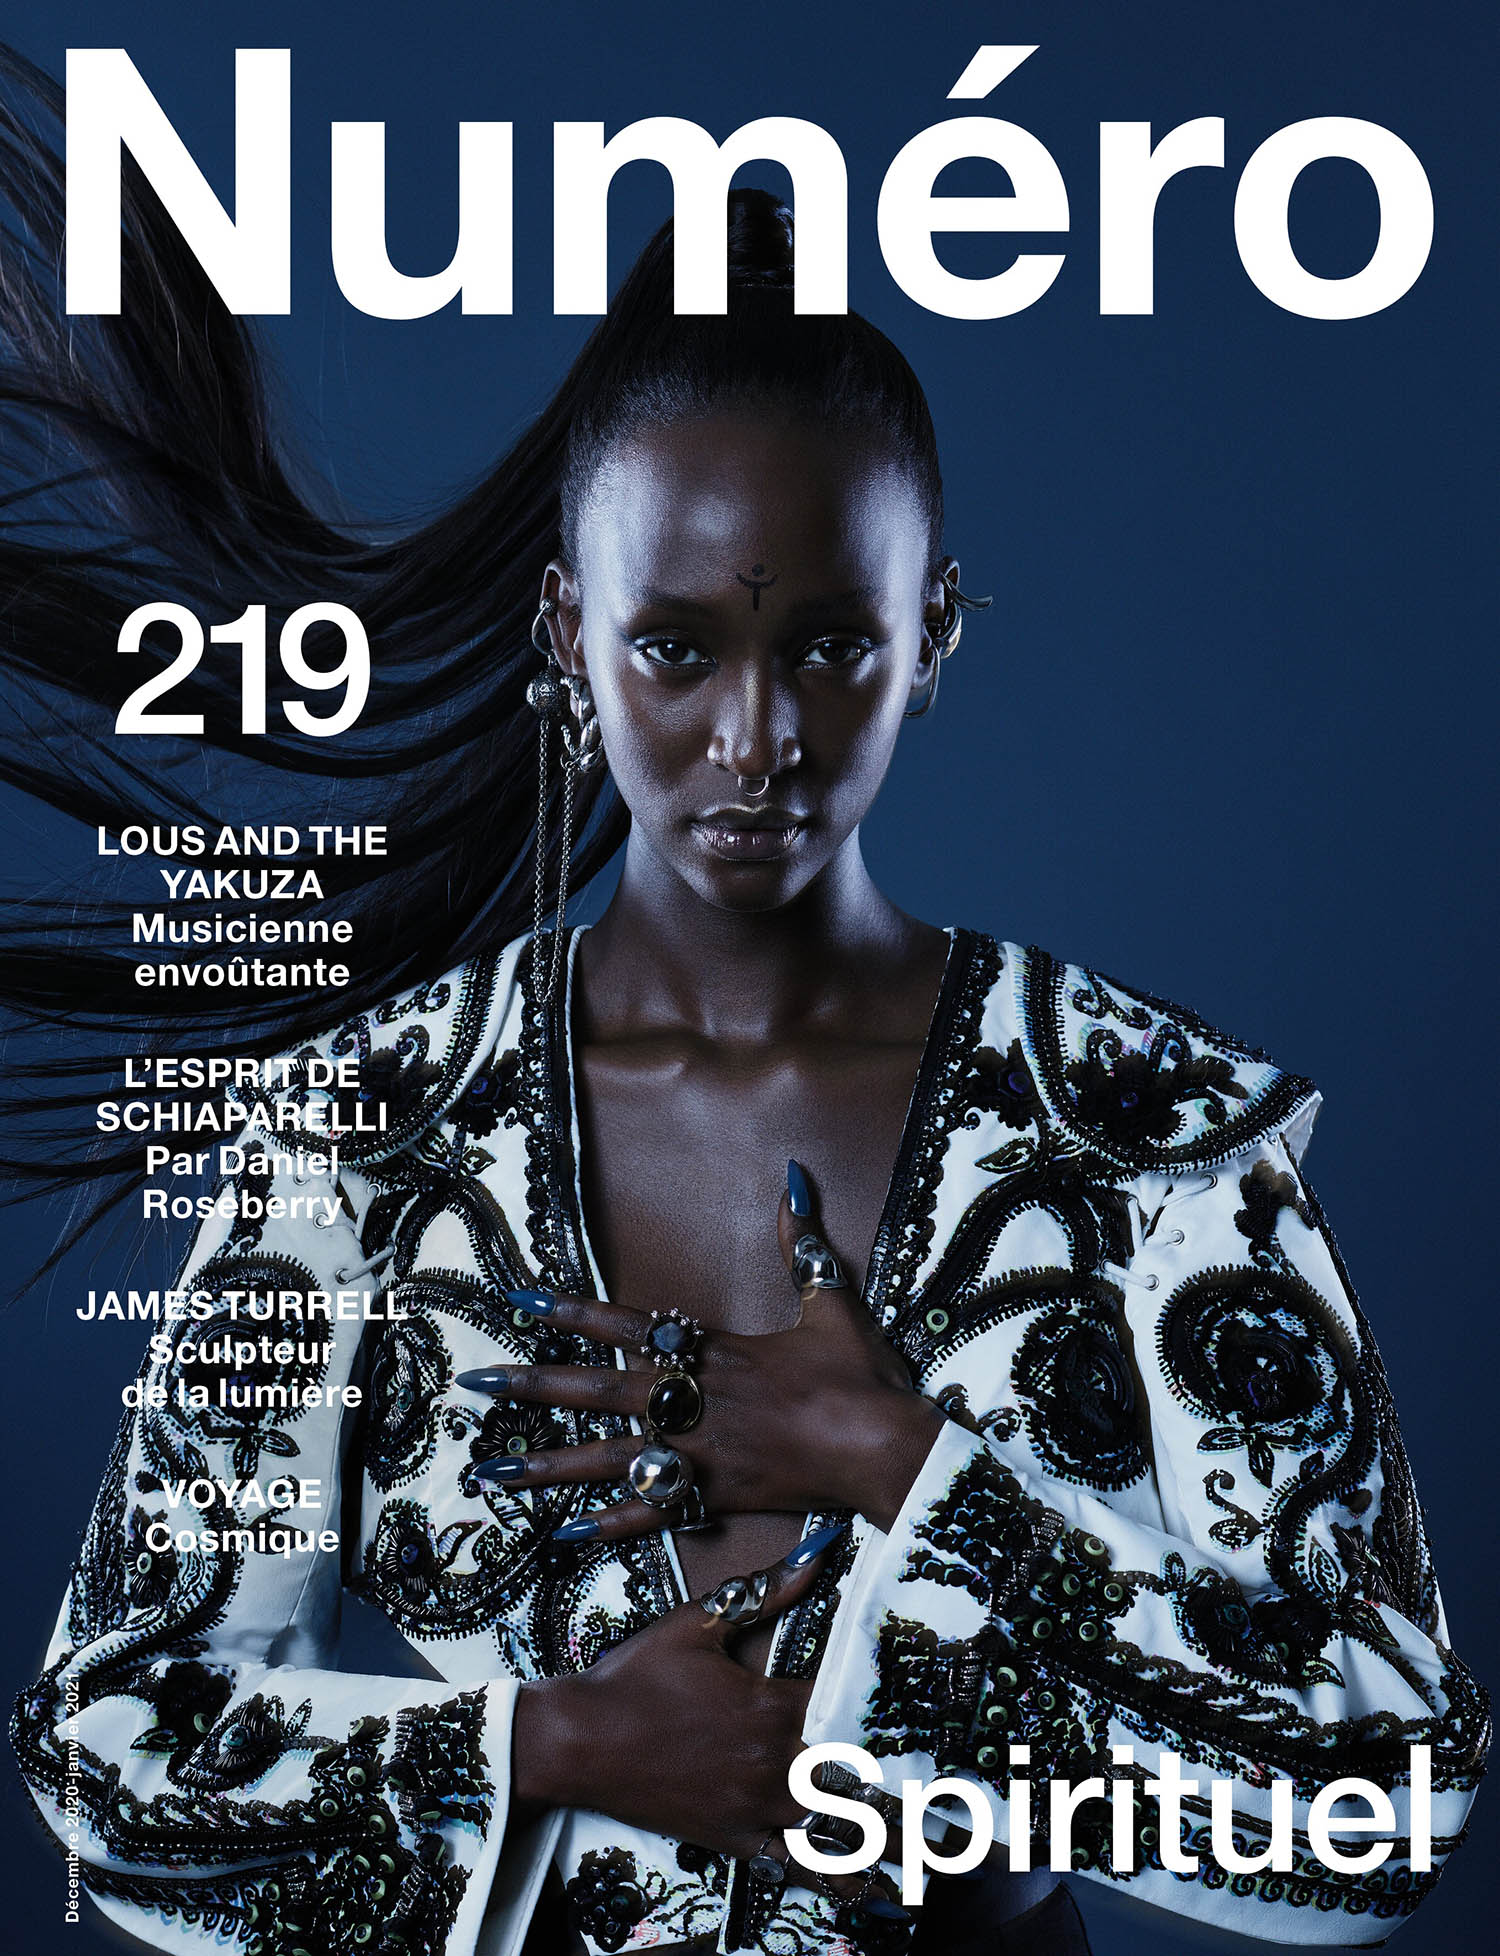 Lous and the Yakuza covers Numéro December 2020 January 2021 by Colin Solal Cardo